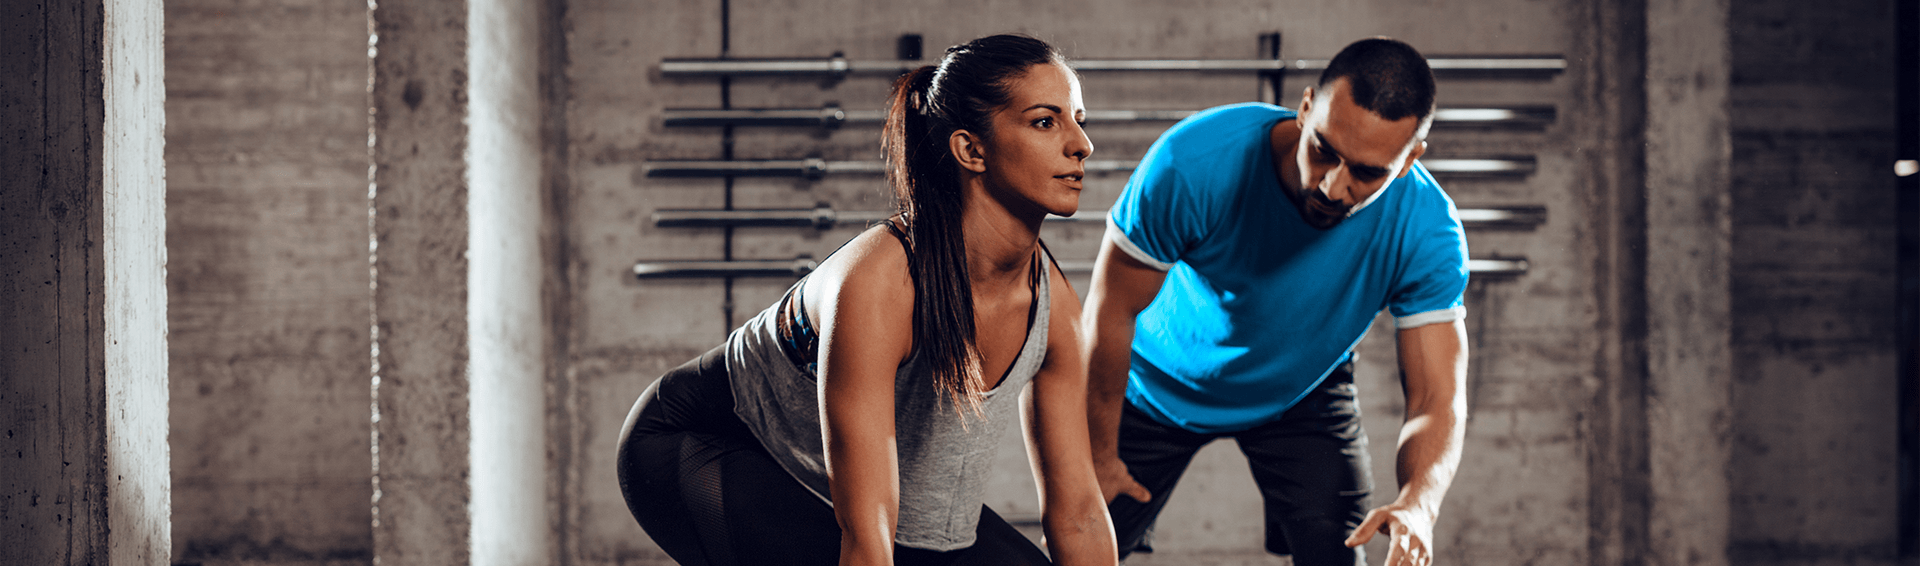 How Much Do Personal Trainers Make A Year?